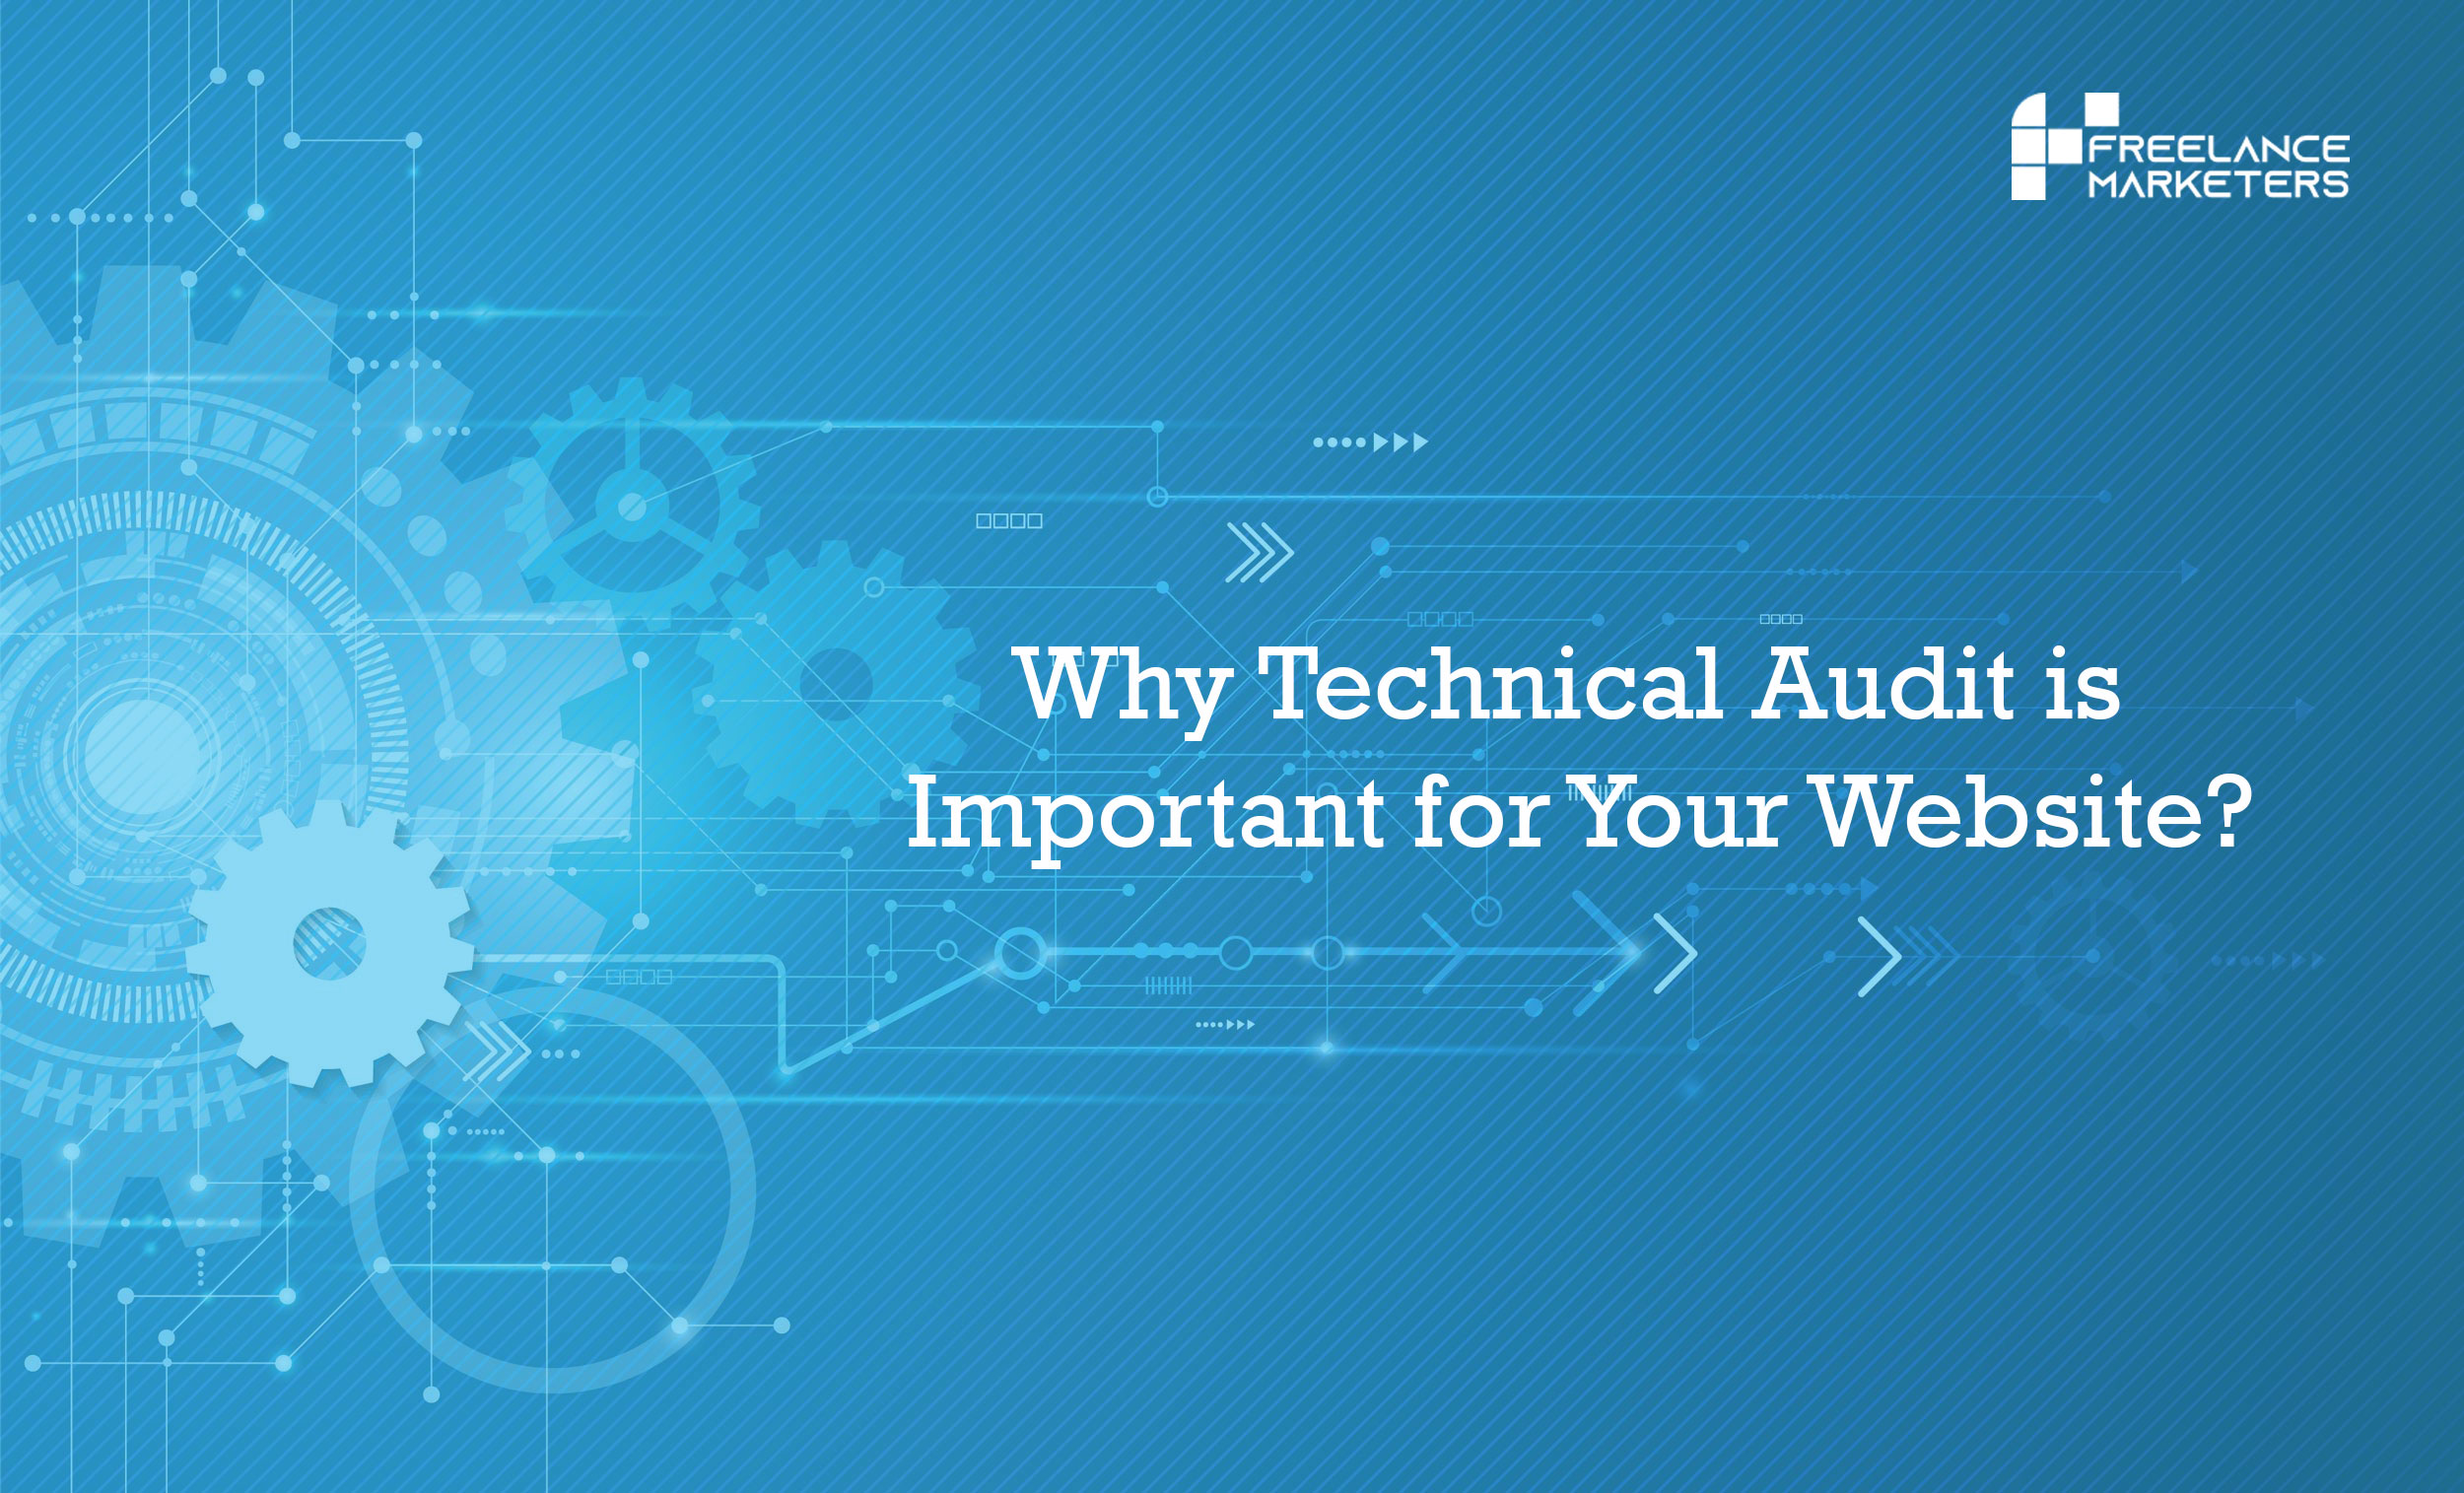 Common FAQs Related to Technical Audit You May Want to Know